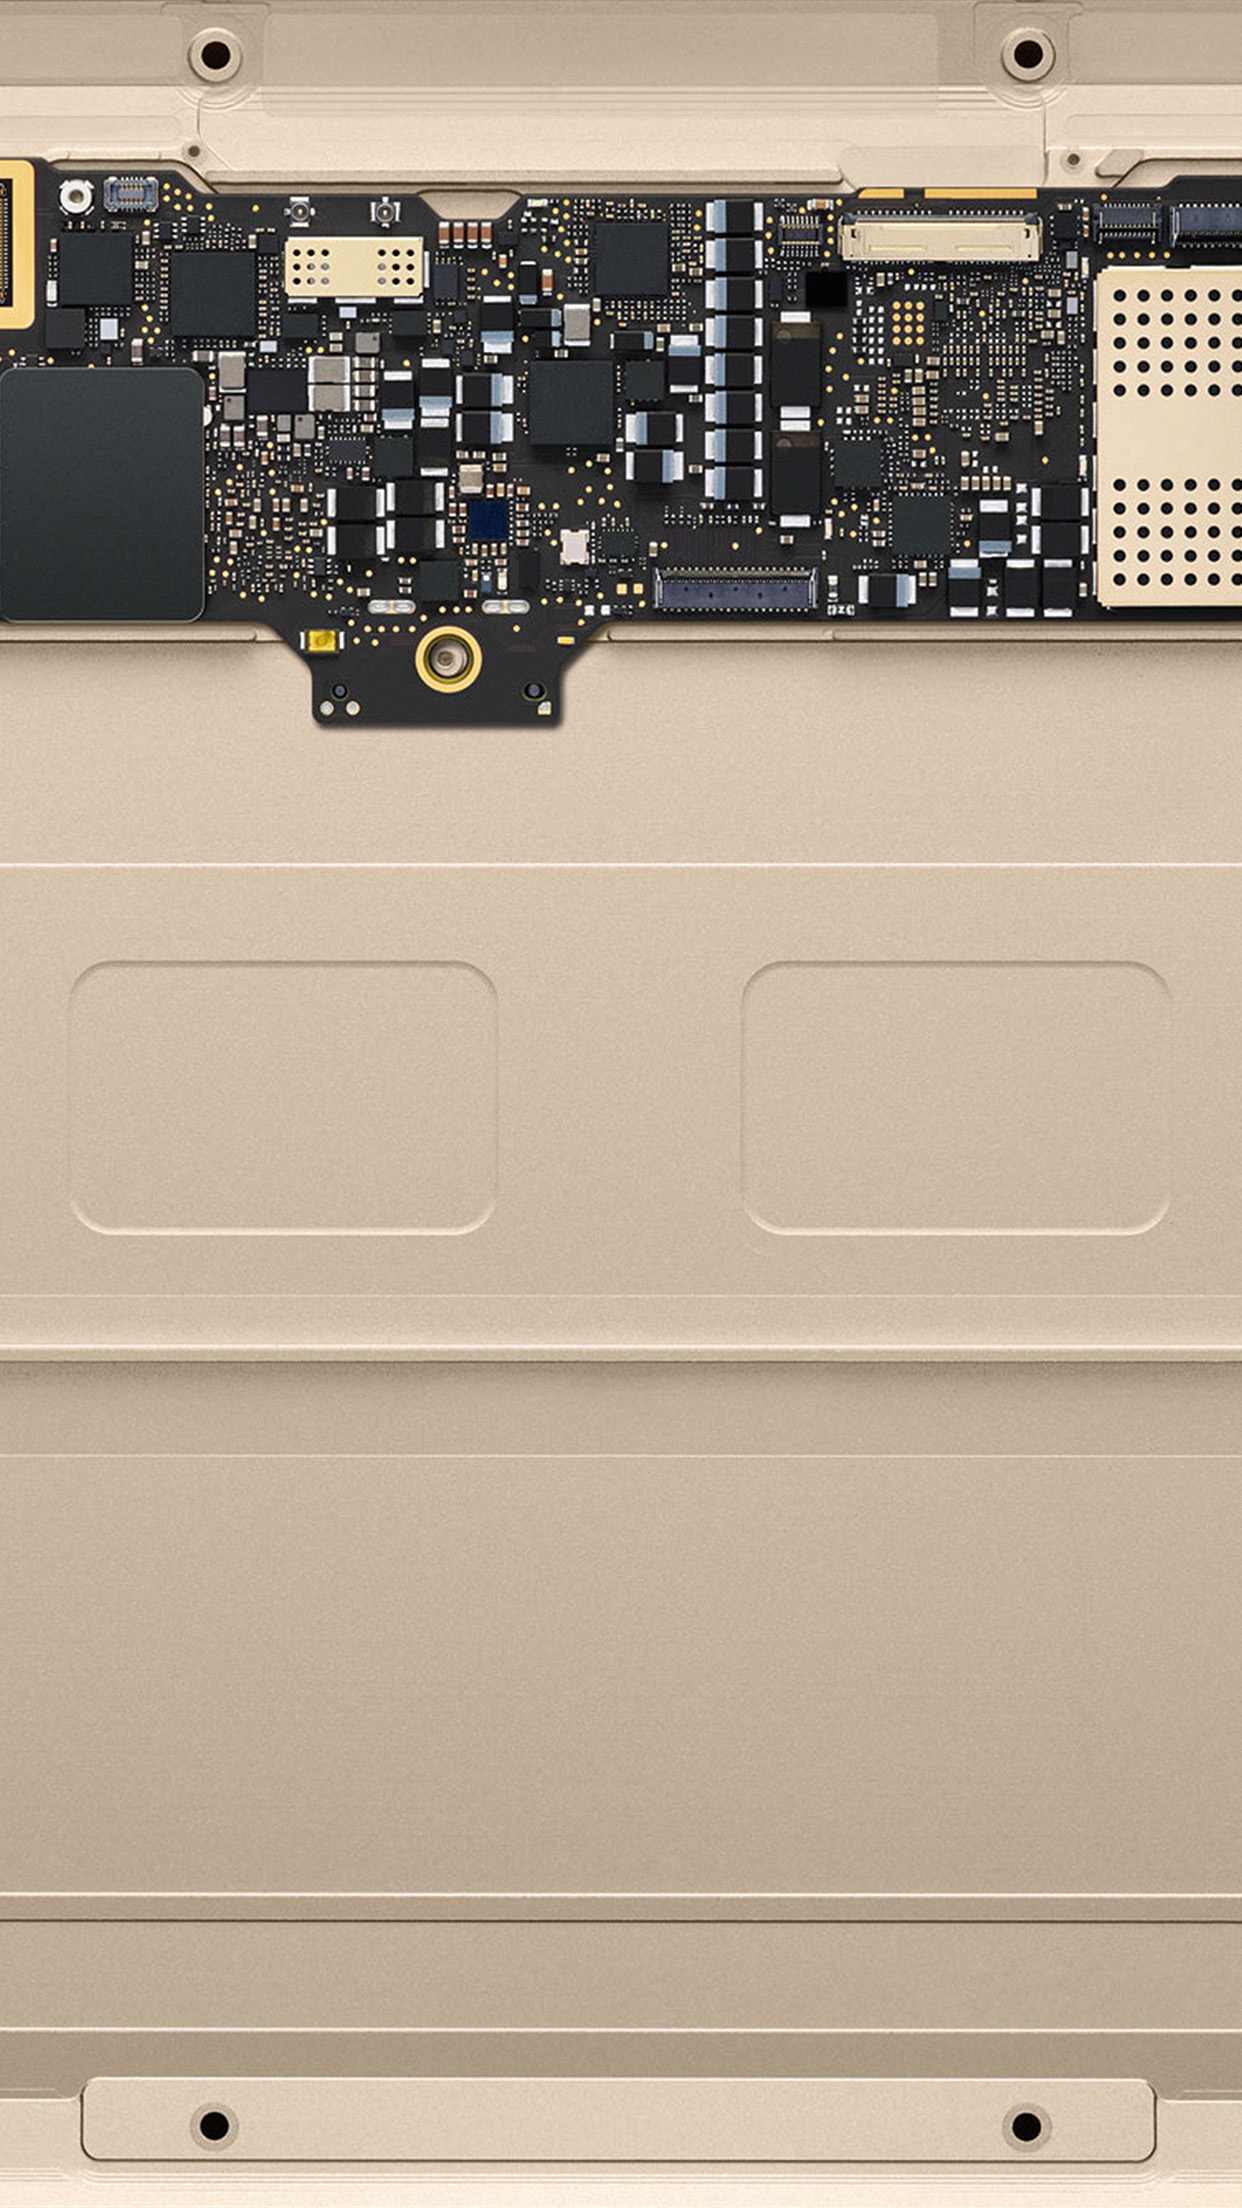 Iphone6papers Com Iphone 6 Wallpaper Au52 Inside Macbook Gold